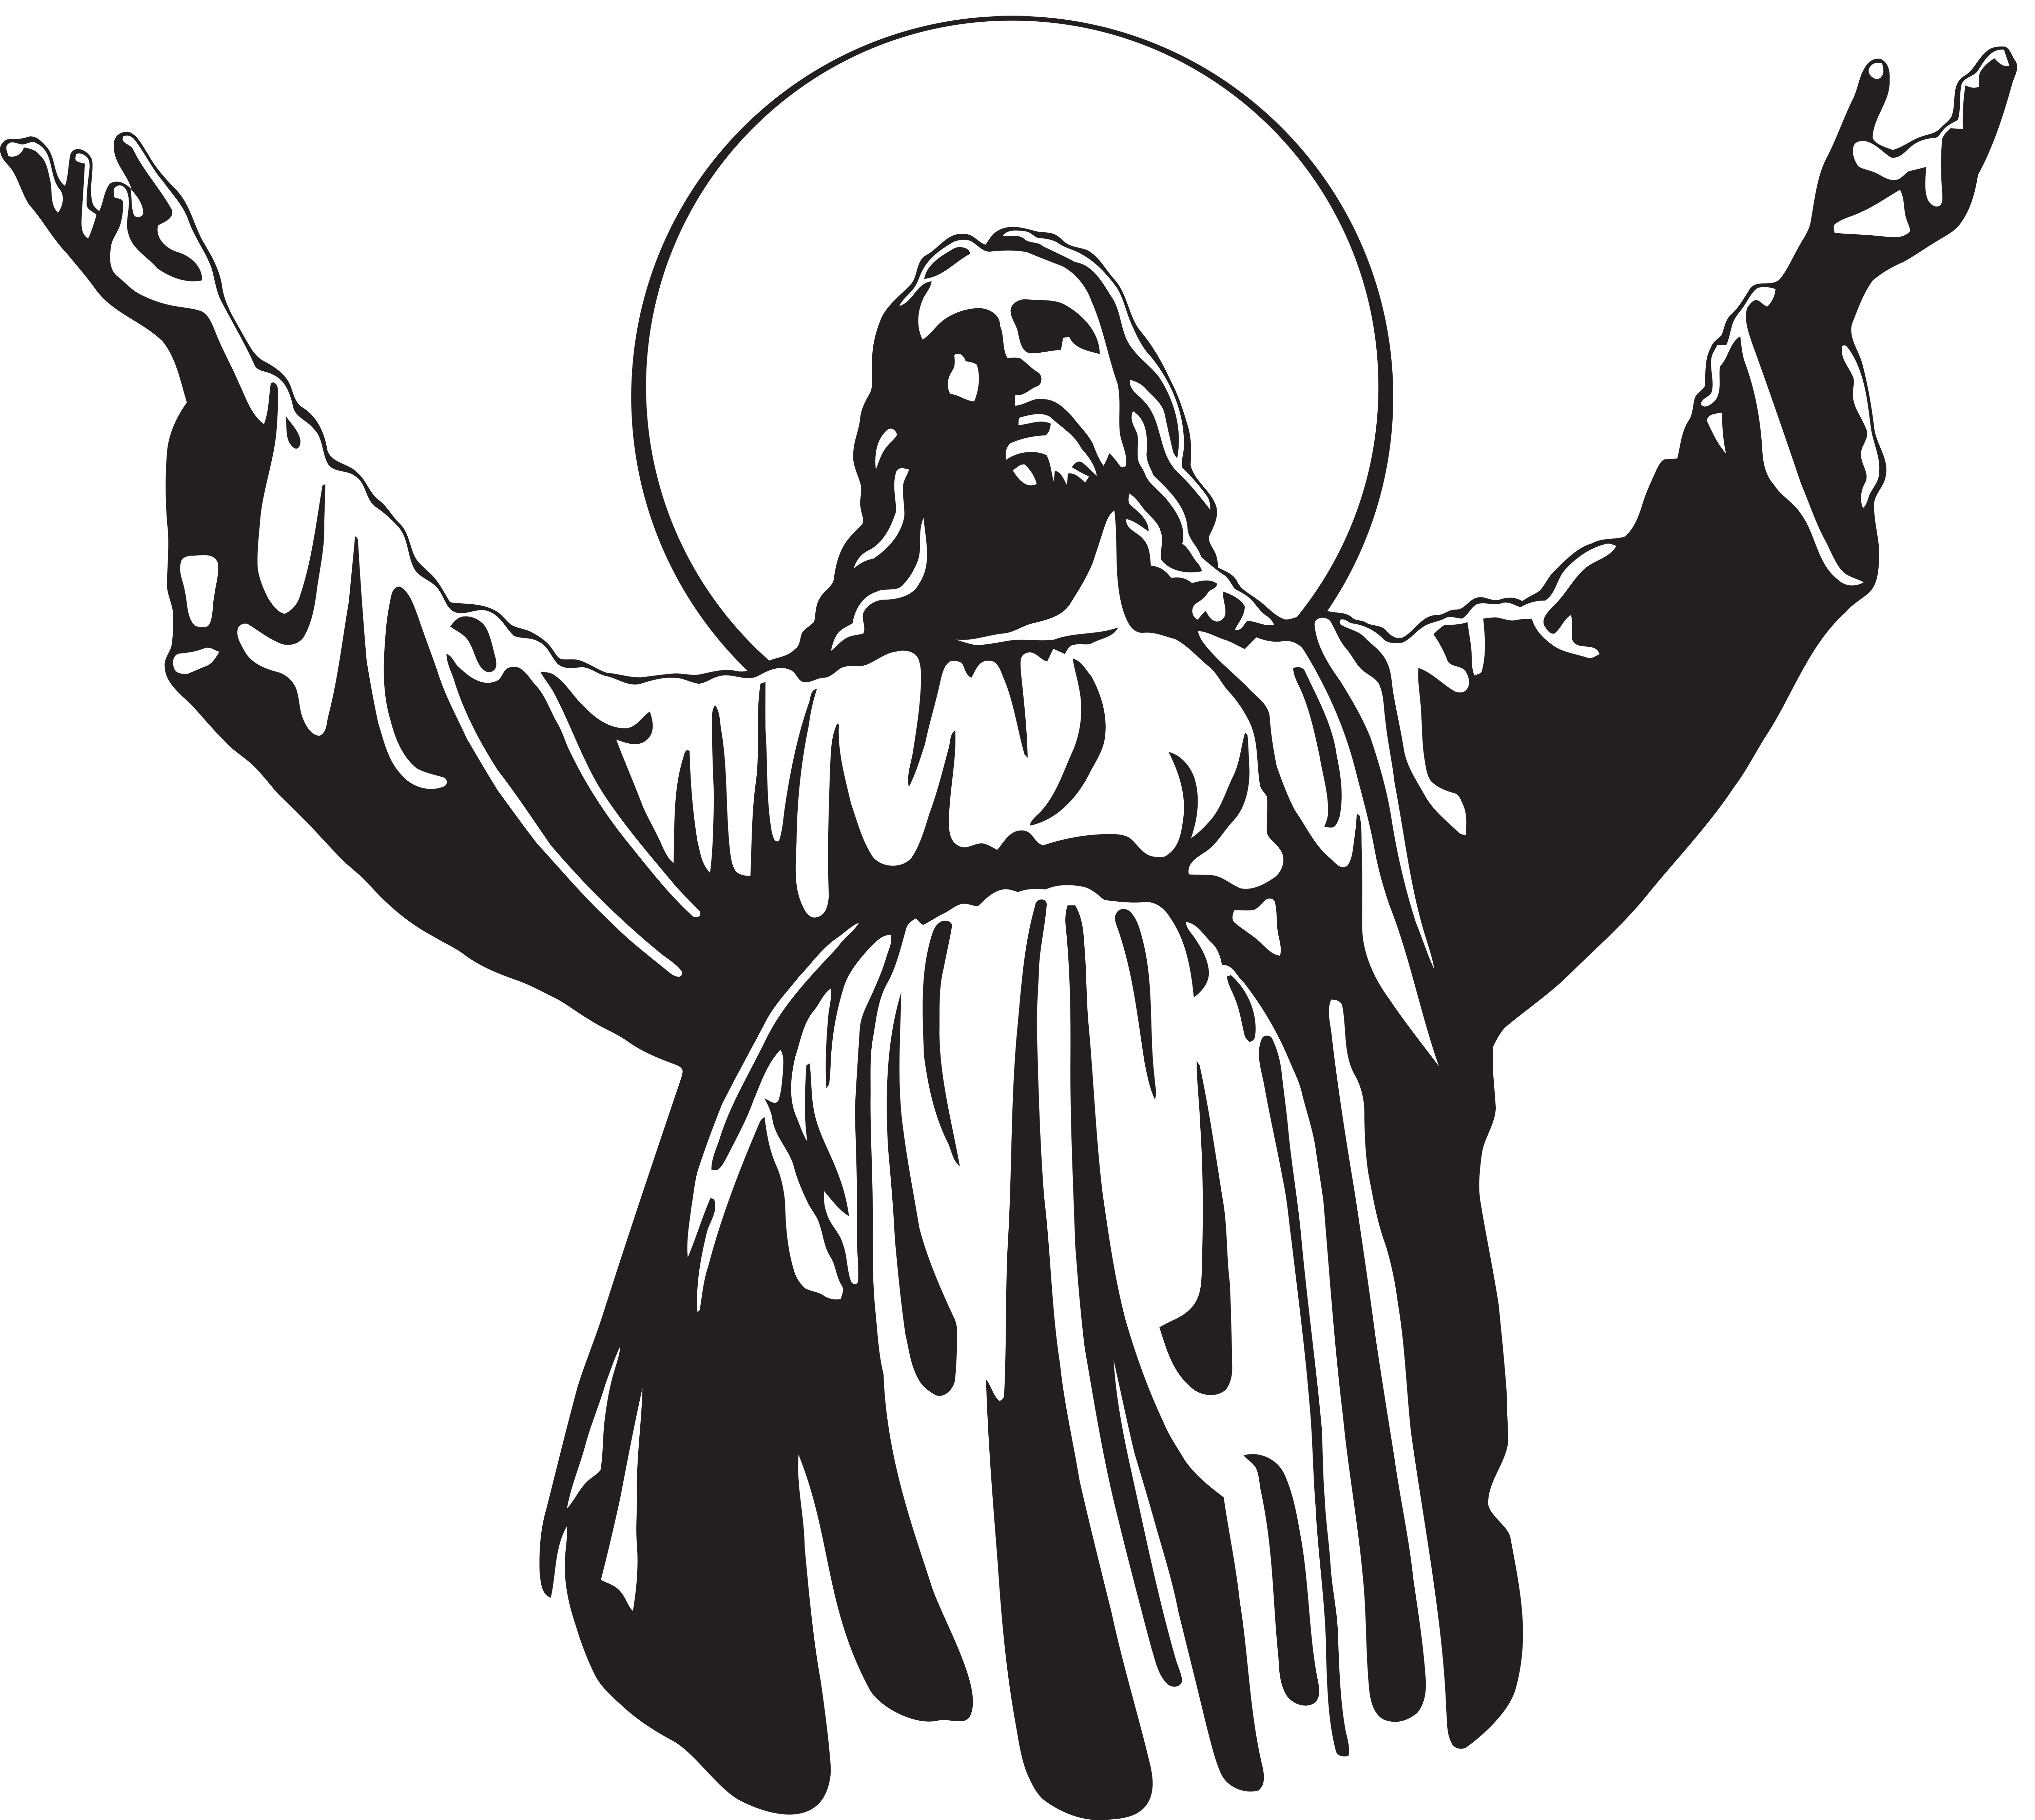 png free library Christian clipart christianity. Jesus christ son of.